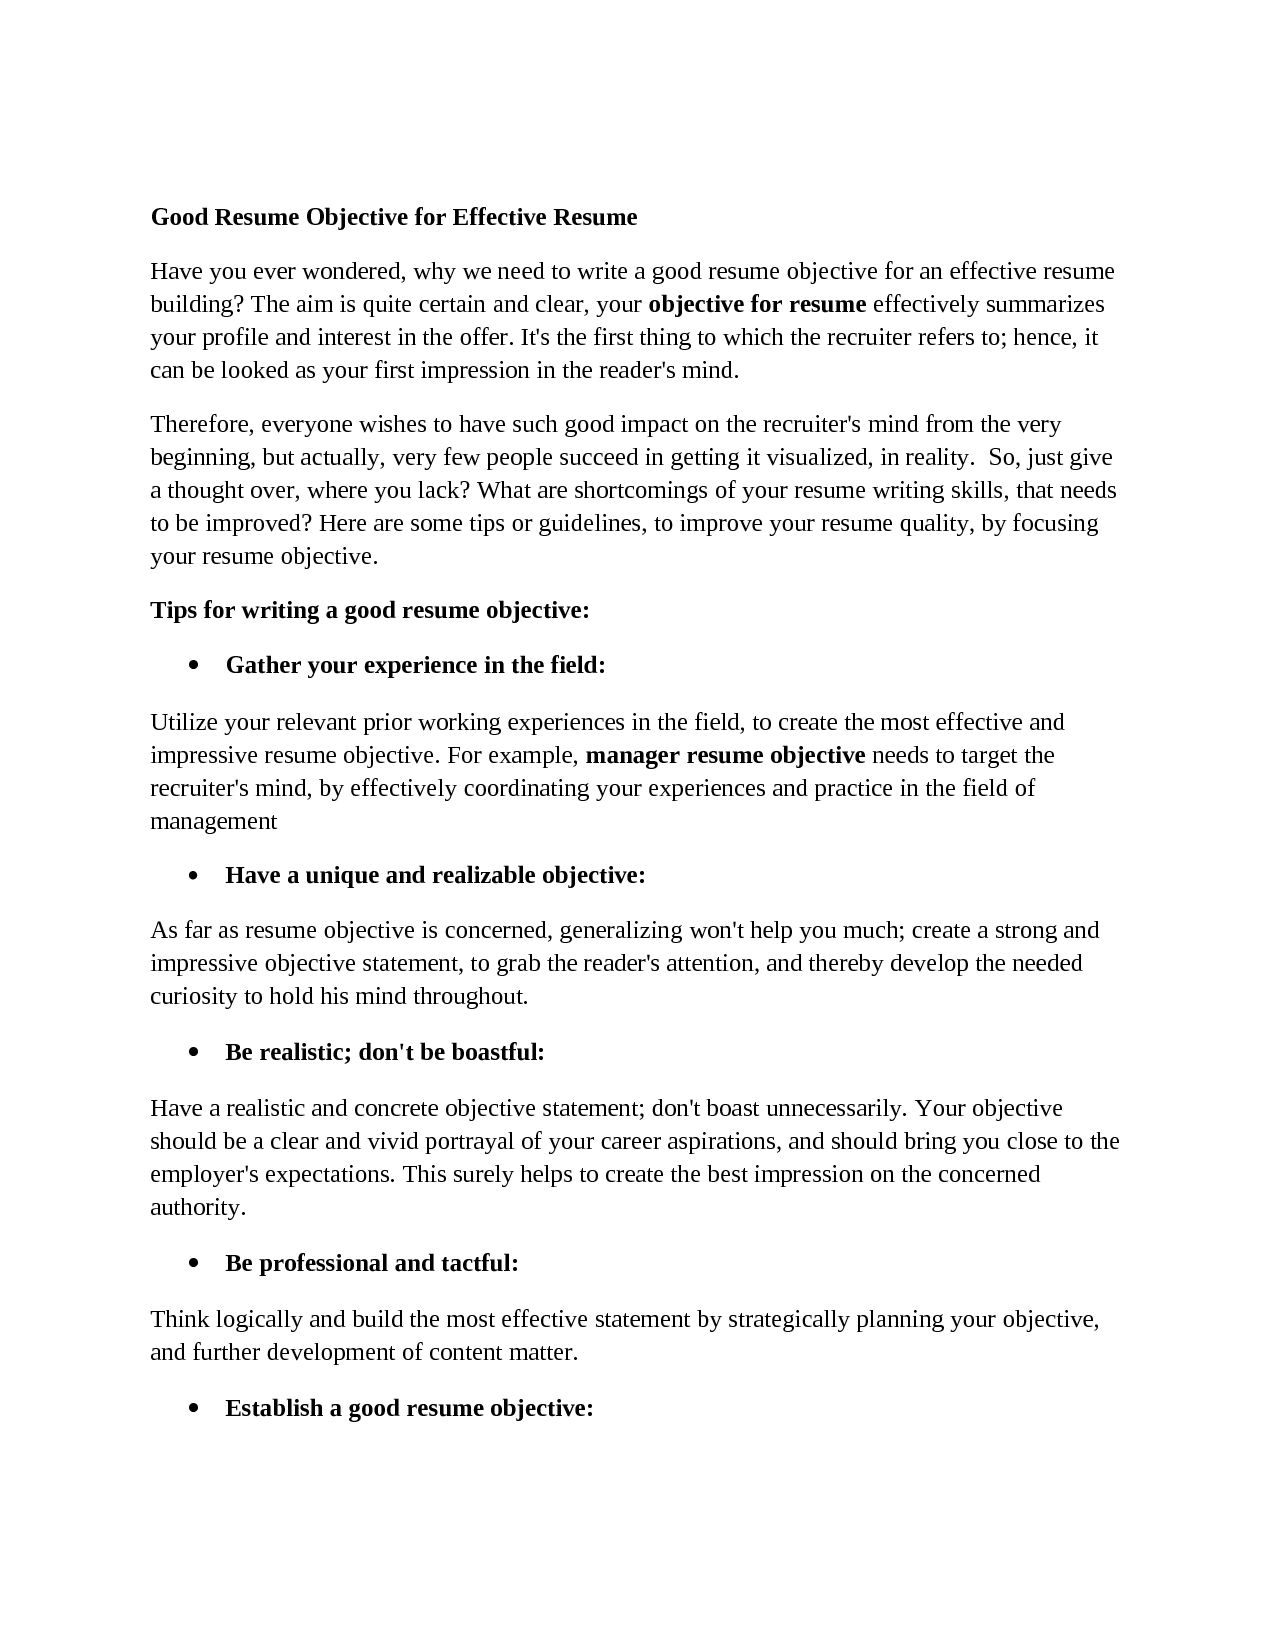 A Good Objective For Resume Dissertation Writing A Research Journeyguidelines For Writing